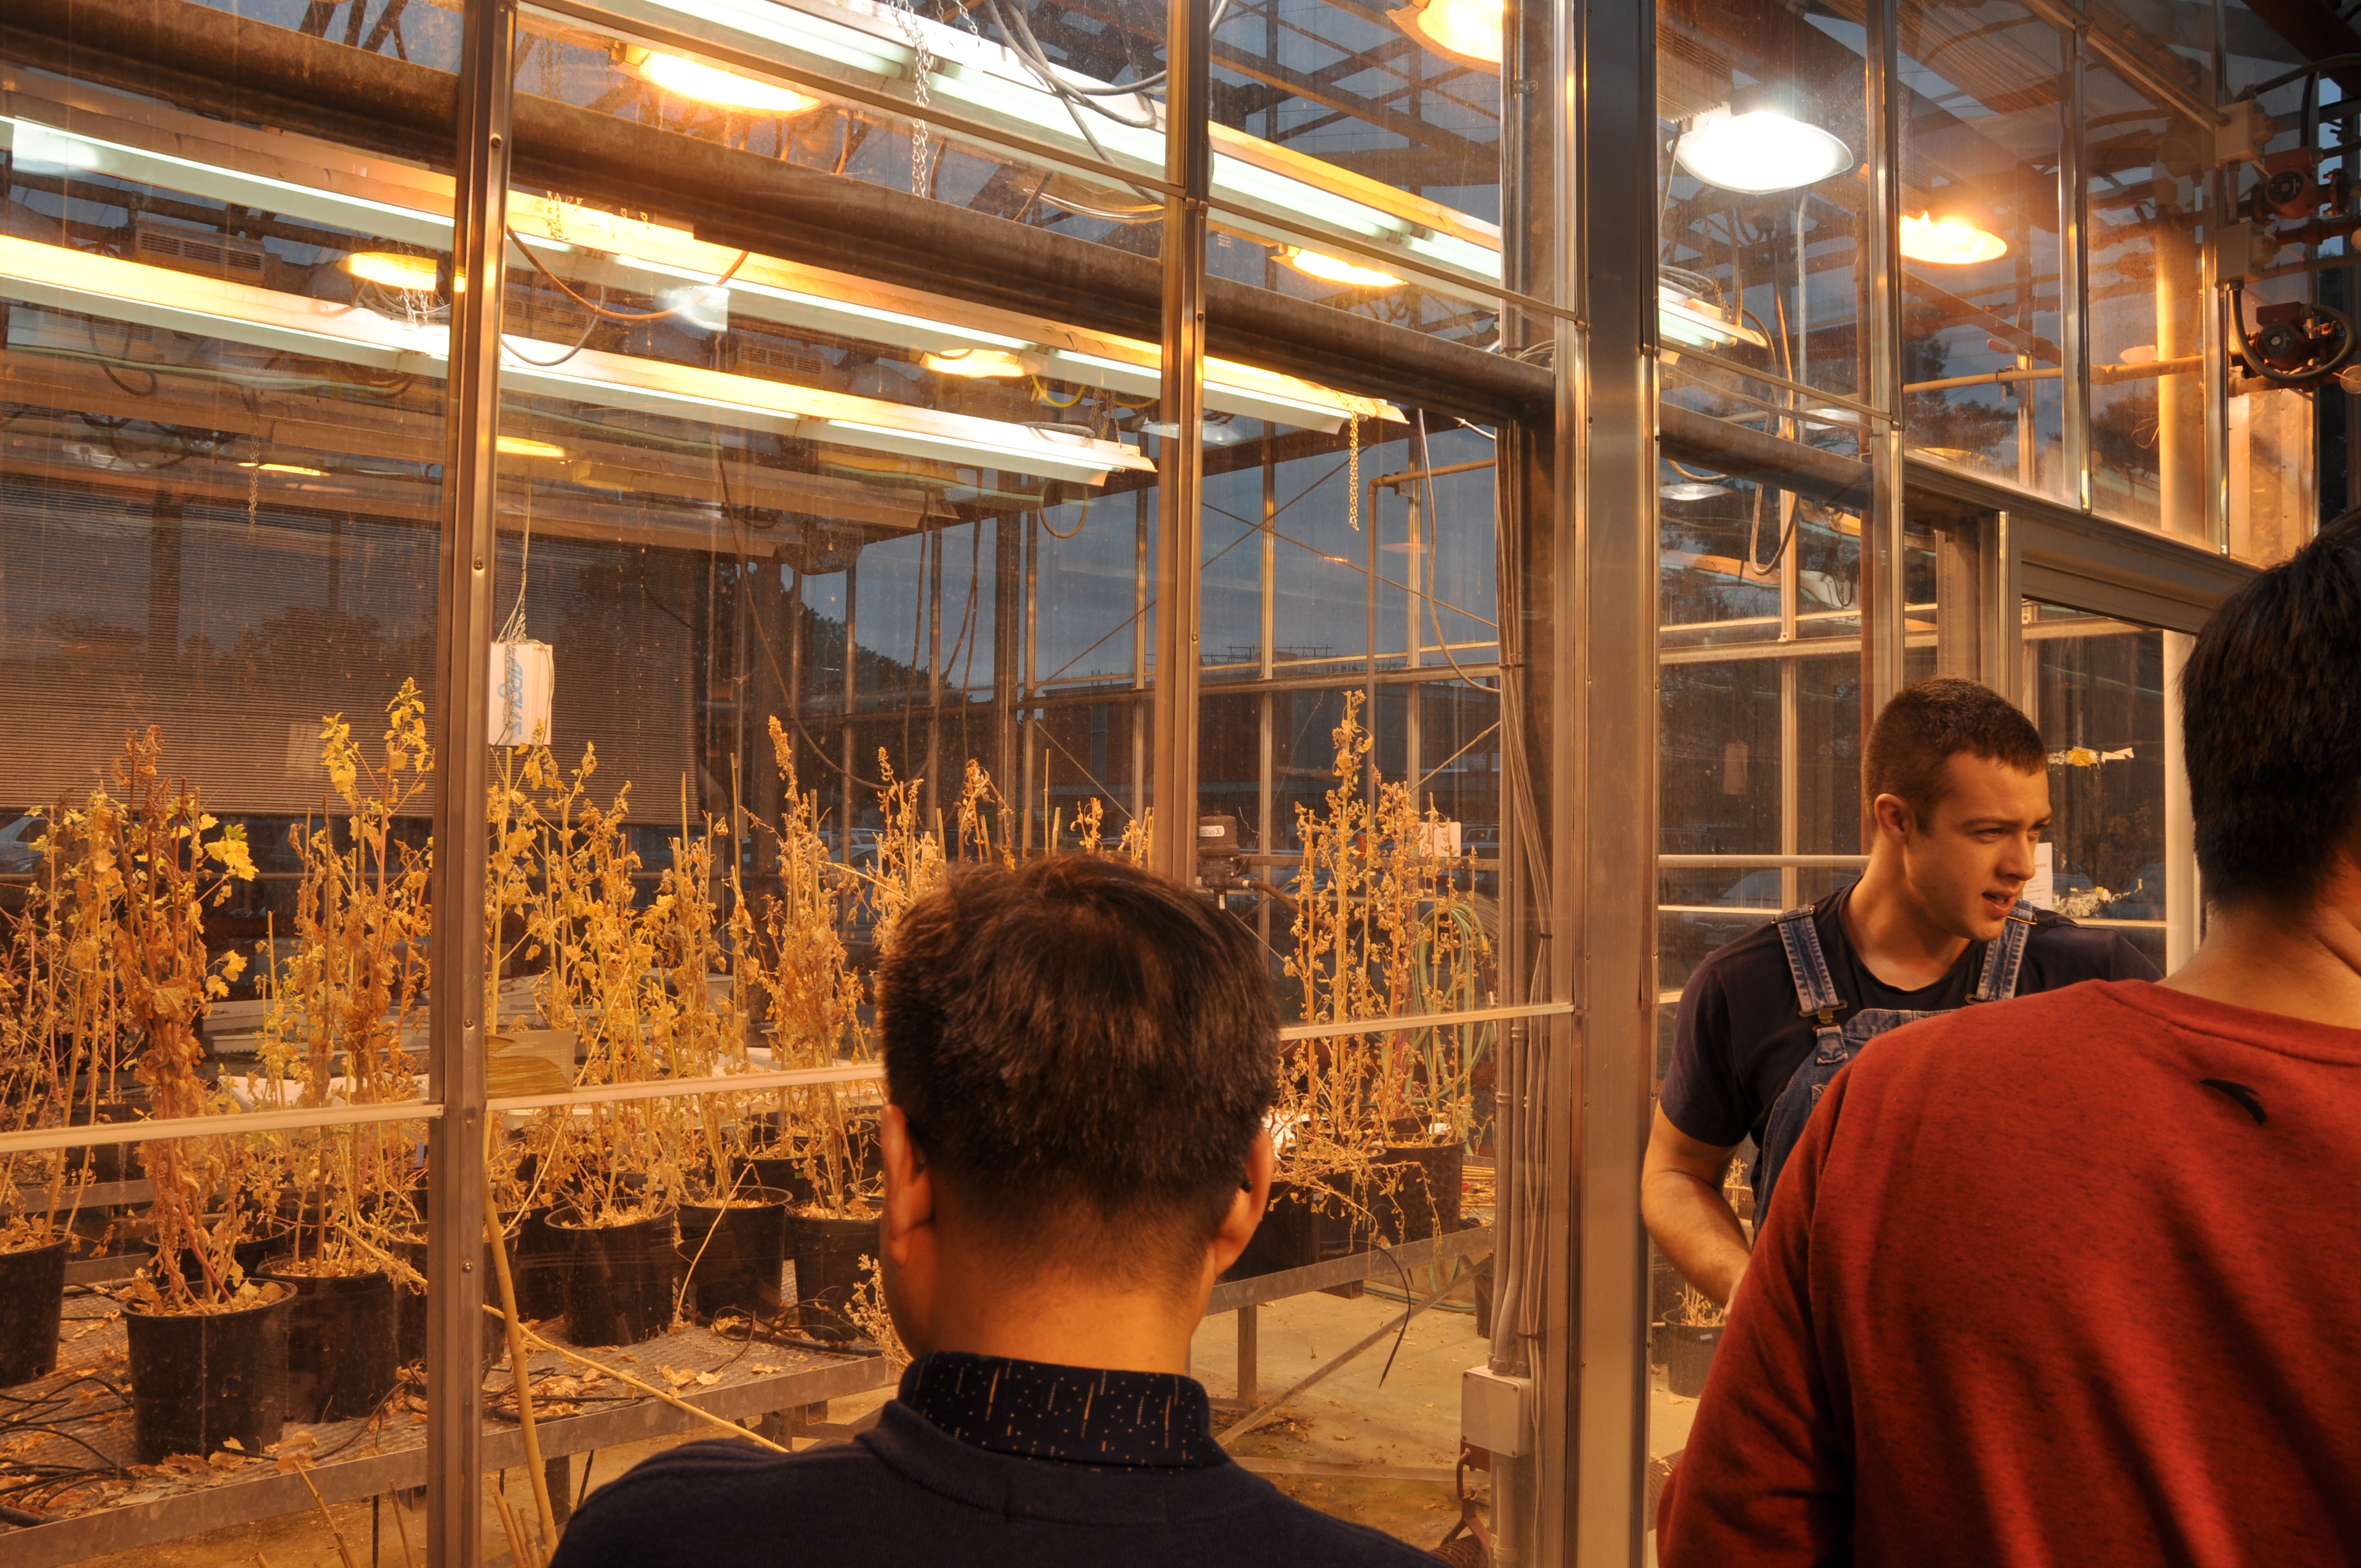 Austin Bruch gives tough of plant agriculture building to Chinese Delegates